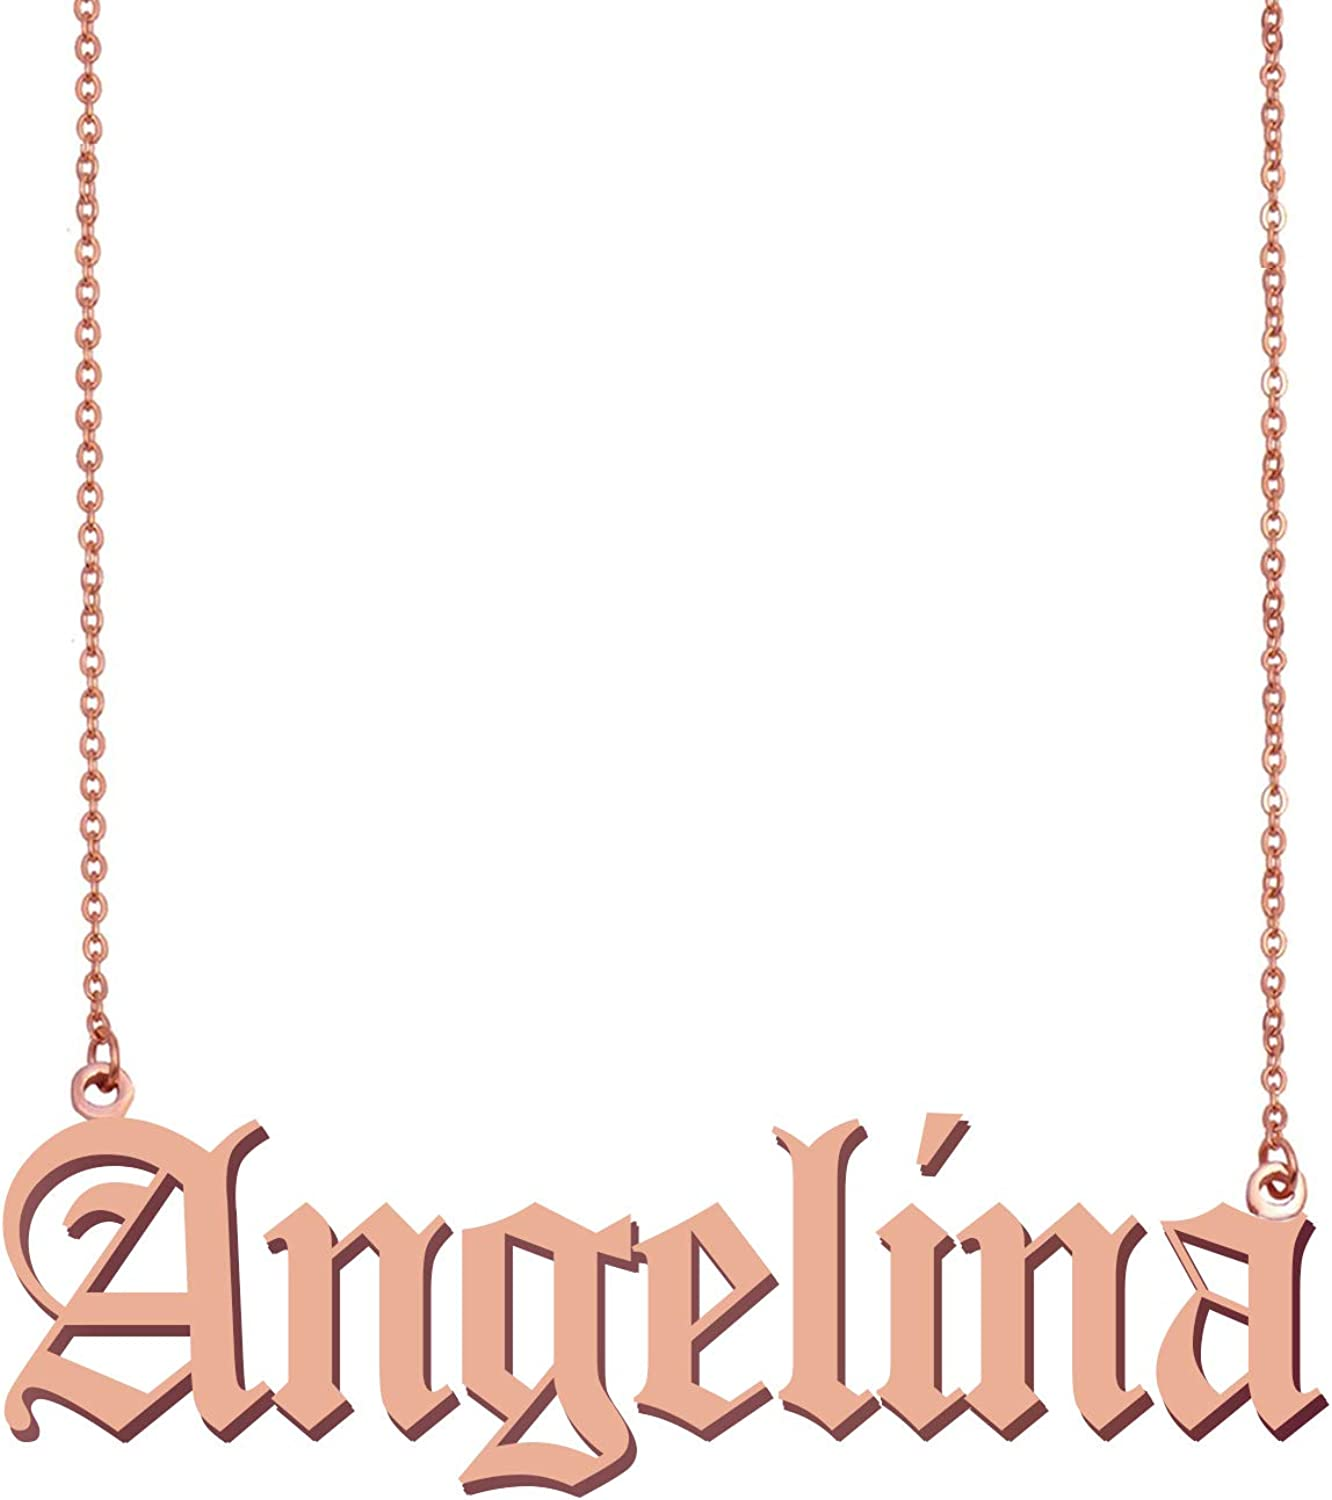 HUAN XUN Peronalized Pendant Old English Custom Name Necklace Best Gifts for Mother Grandma Angelina